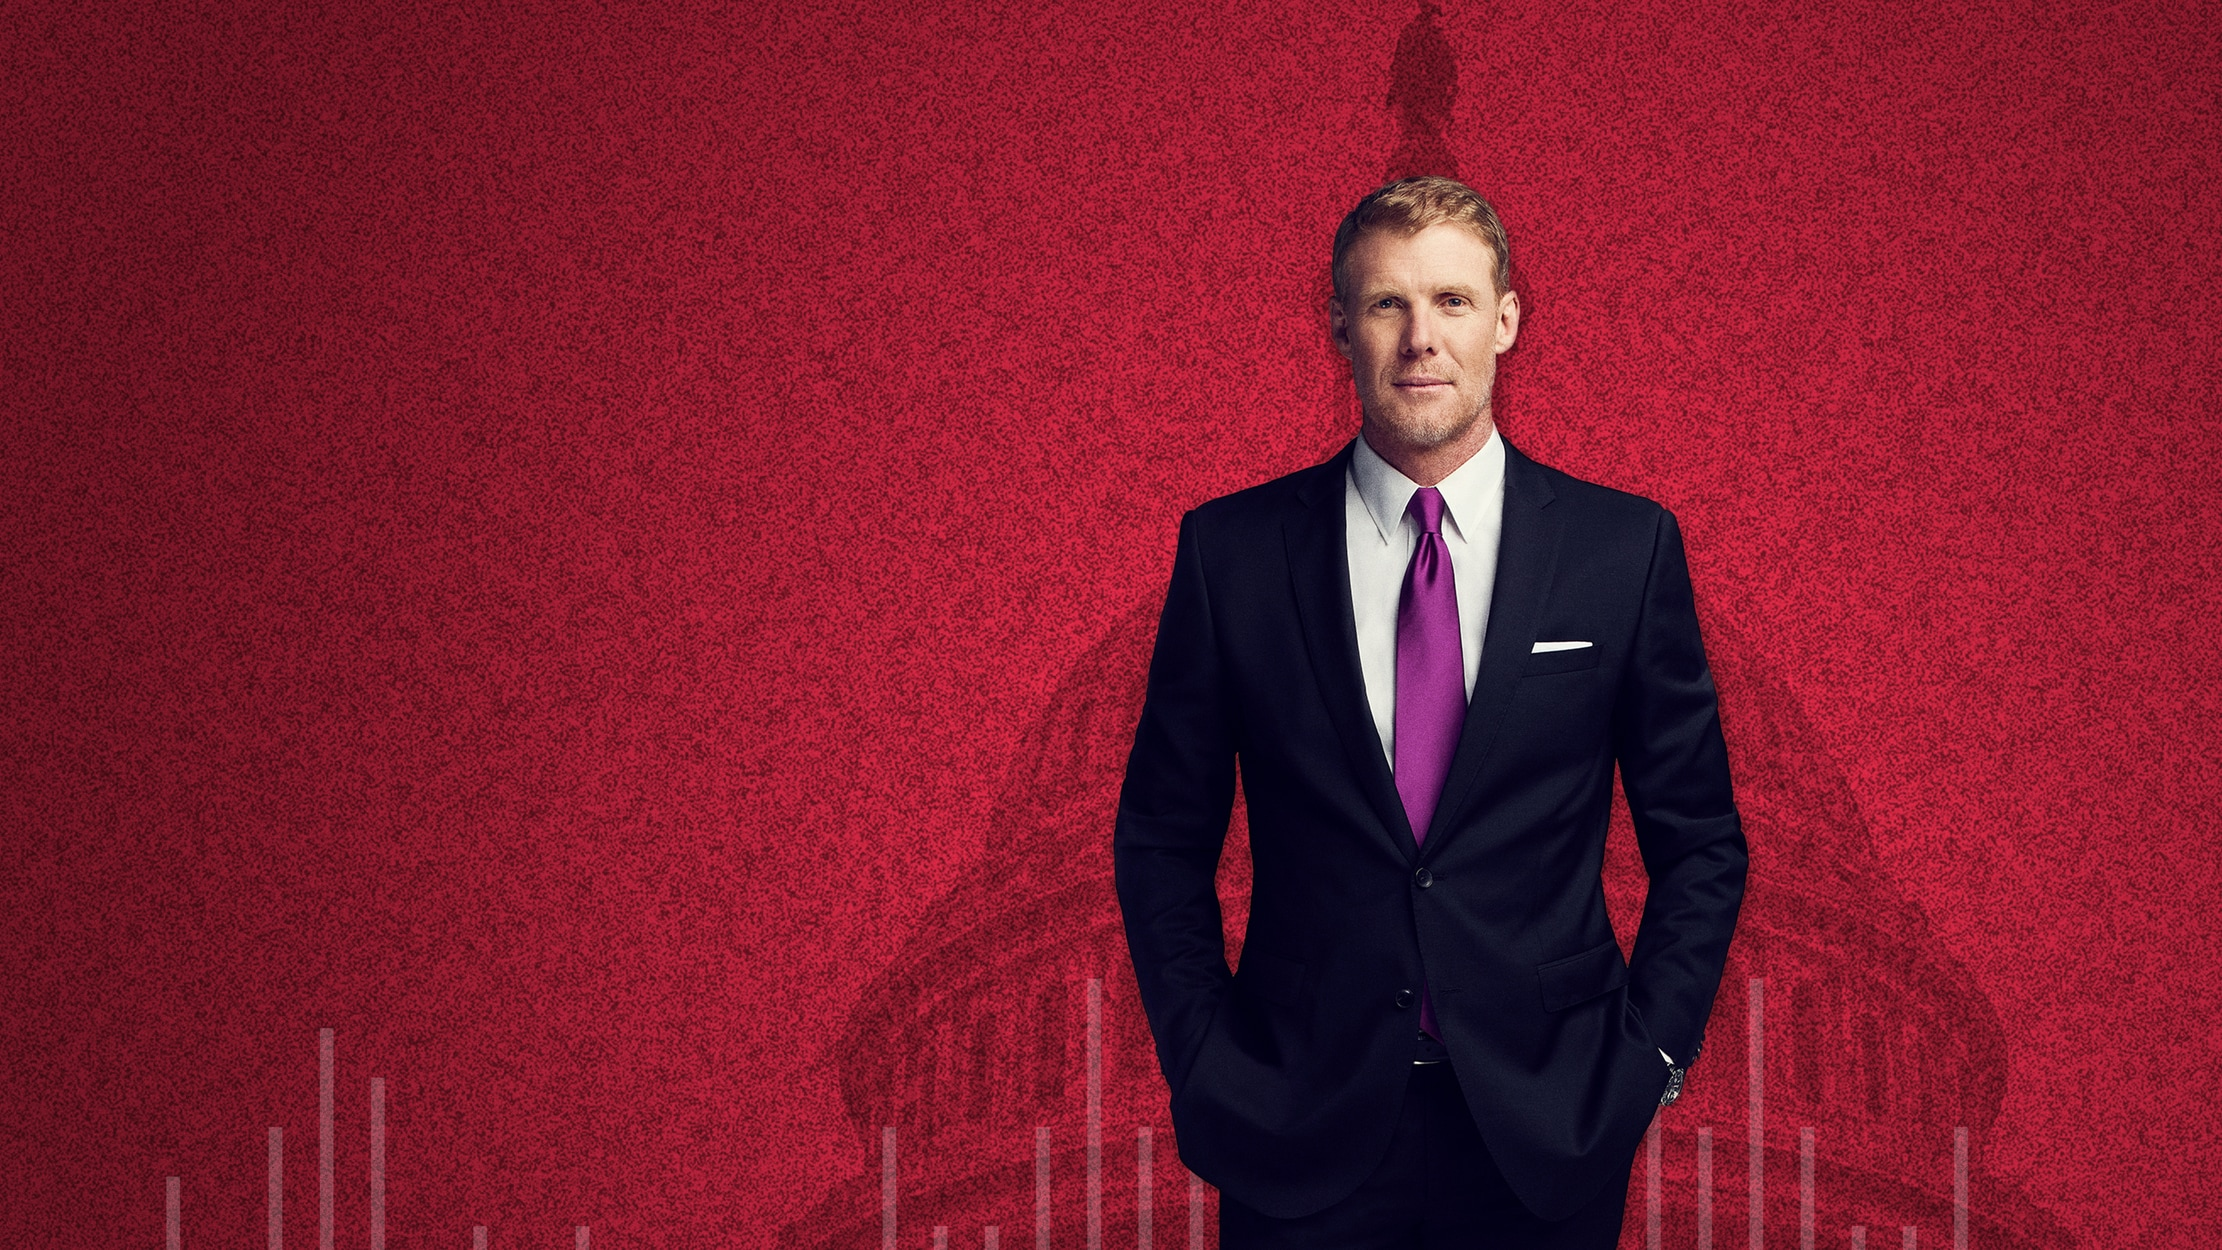 Alexi Lalas' State of the Union seriesDetail